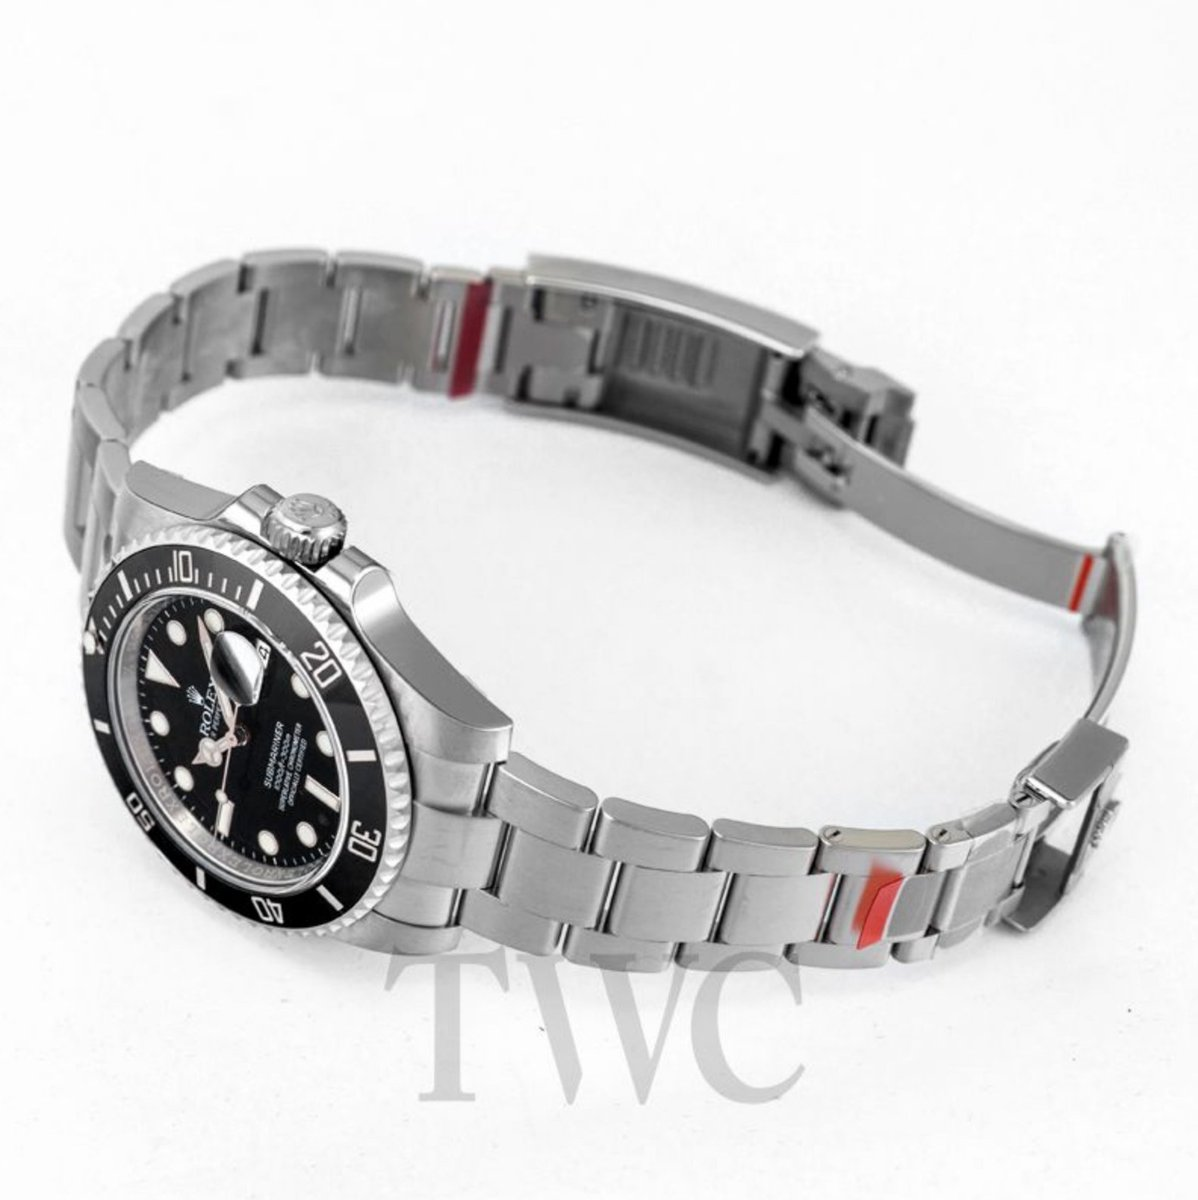 Rolex Submariner Steel Automatic Black Dial Men's Watch 116610 LN for sale at @twctokyo   Certified luxury watch shop located in Tokyo's Sun Mall (Tokyo, Japan) Shipping Internationally  For all product inquiries: info@TWCtokyo.com Follow them on Instagram, @twctokyo  #watches pic.twitter.com/ZZ6fczTSfz